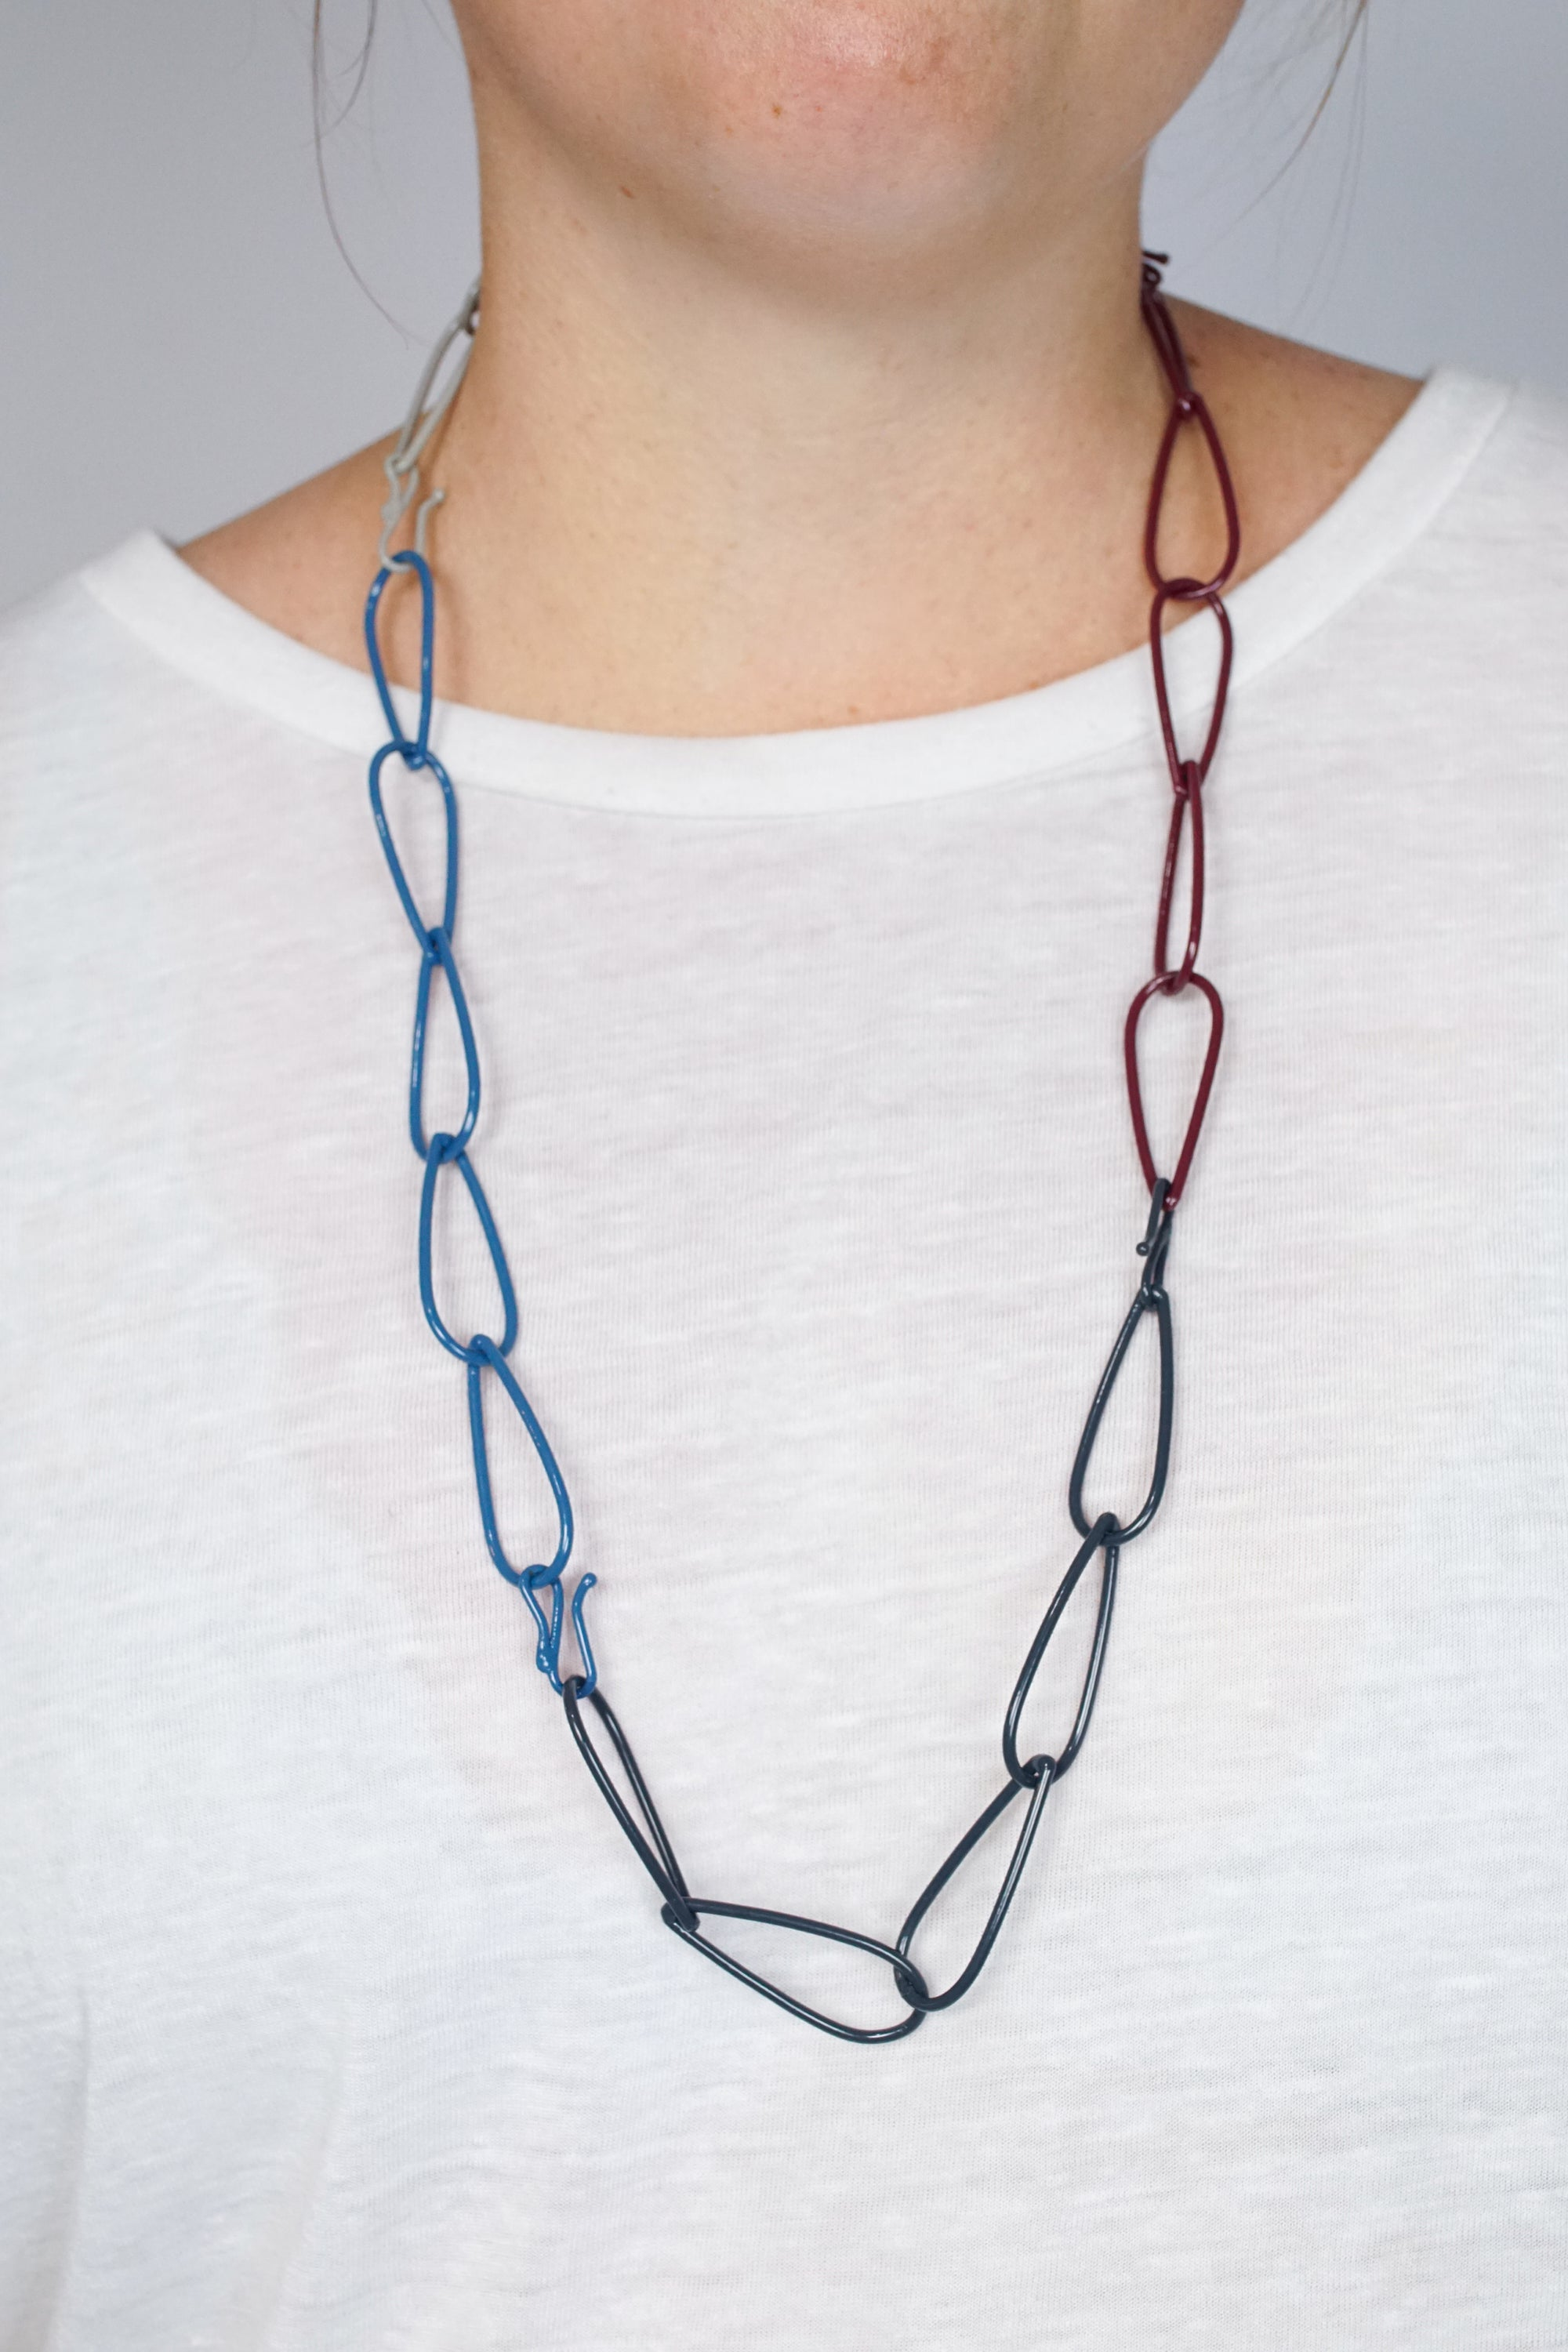 Long Modular Necklace in Azure Blue, Midnight Grey, Lush Burgundy, and Stone Grey